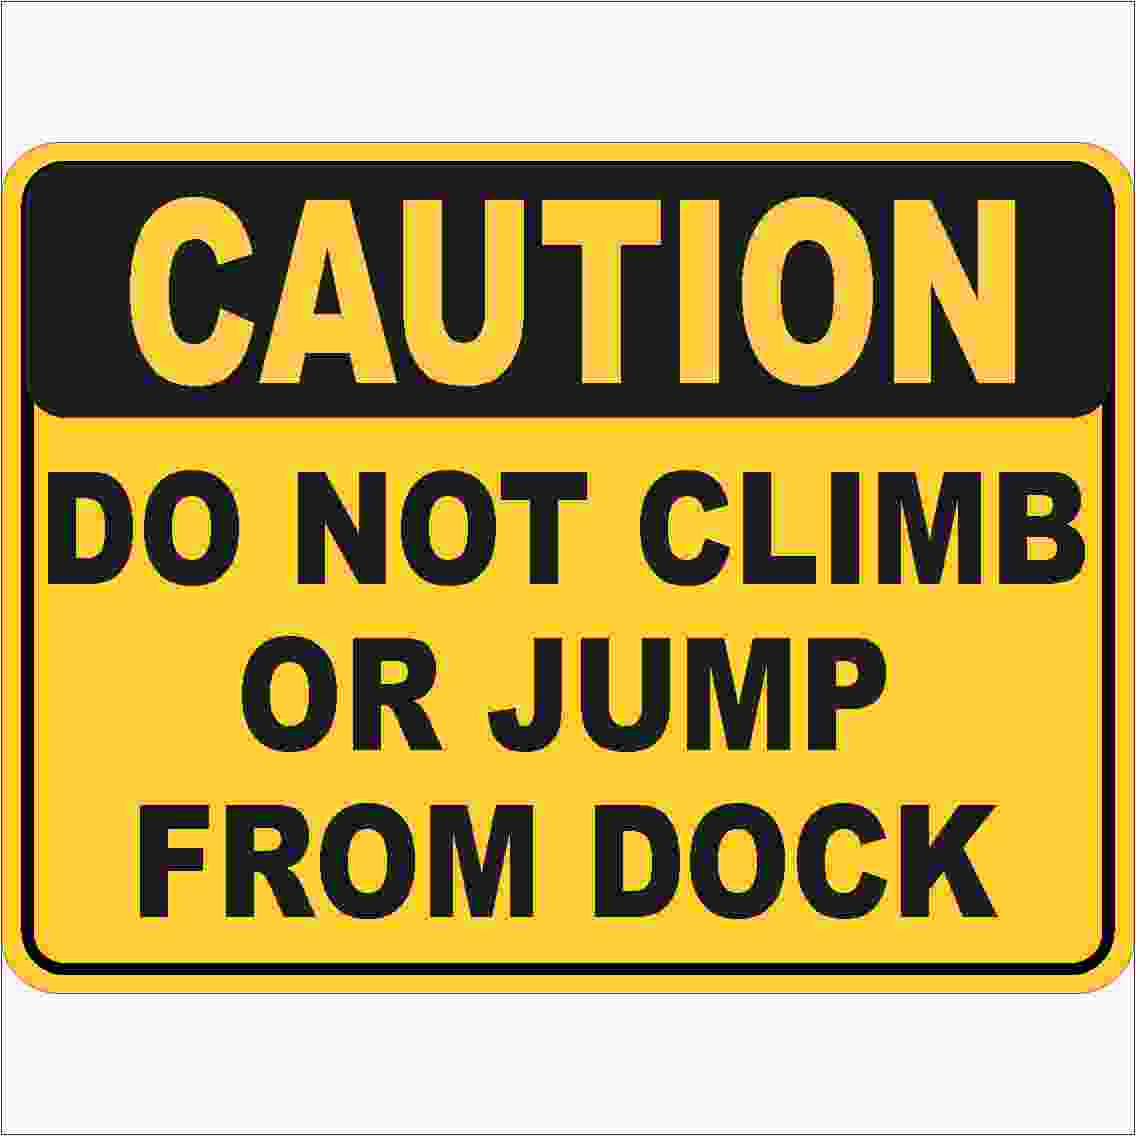 Warning Signs DO NOT CLIMB OR JUMP FROM DOCK